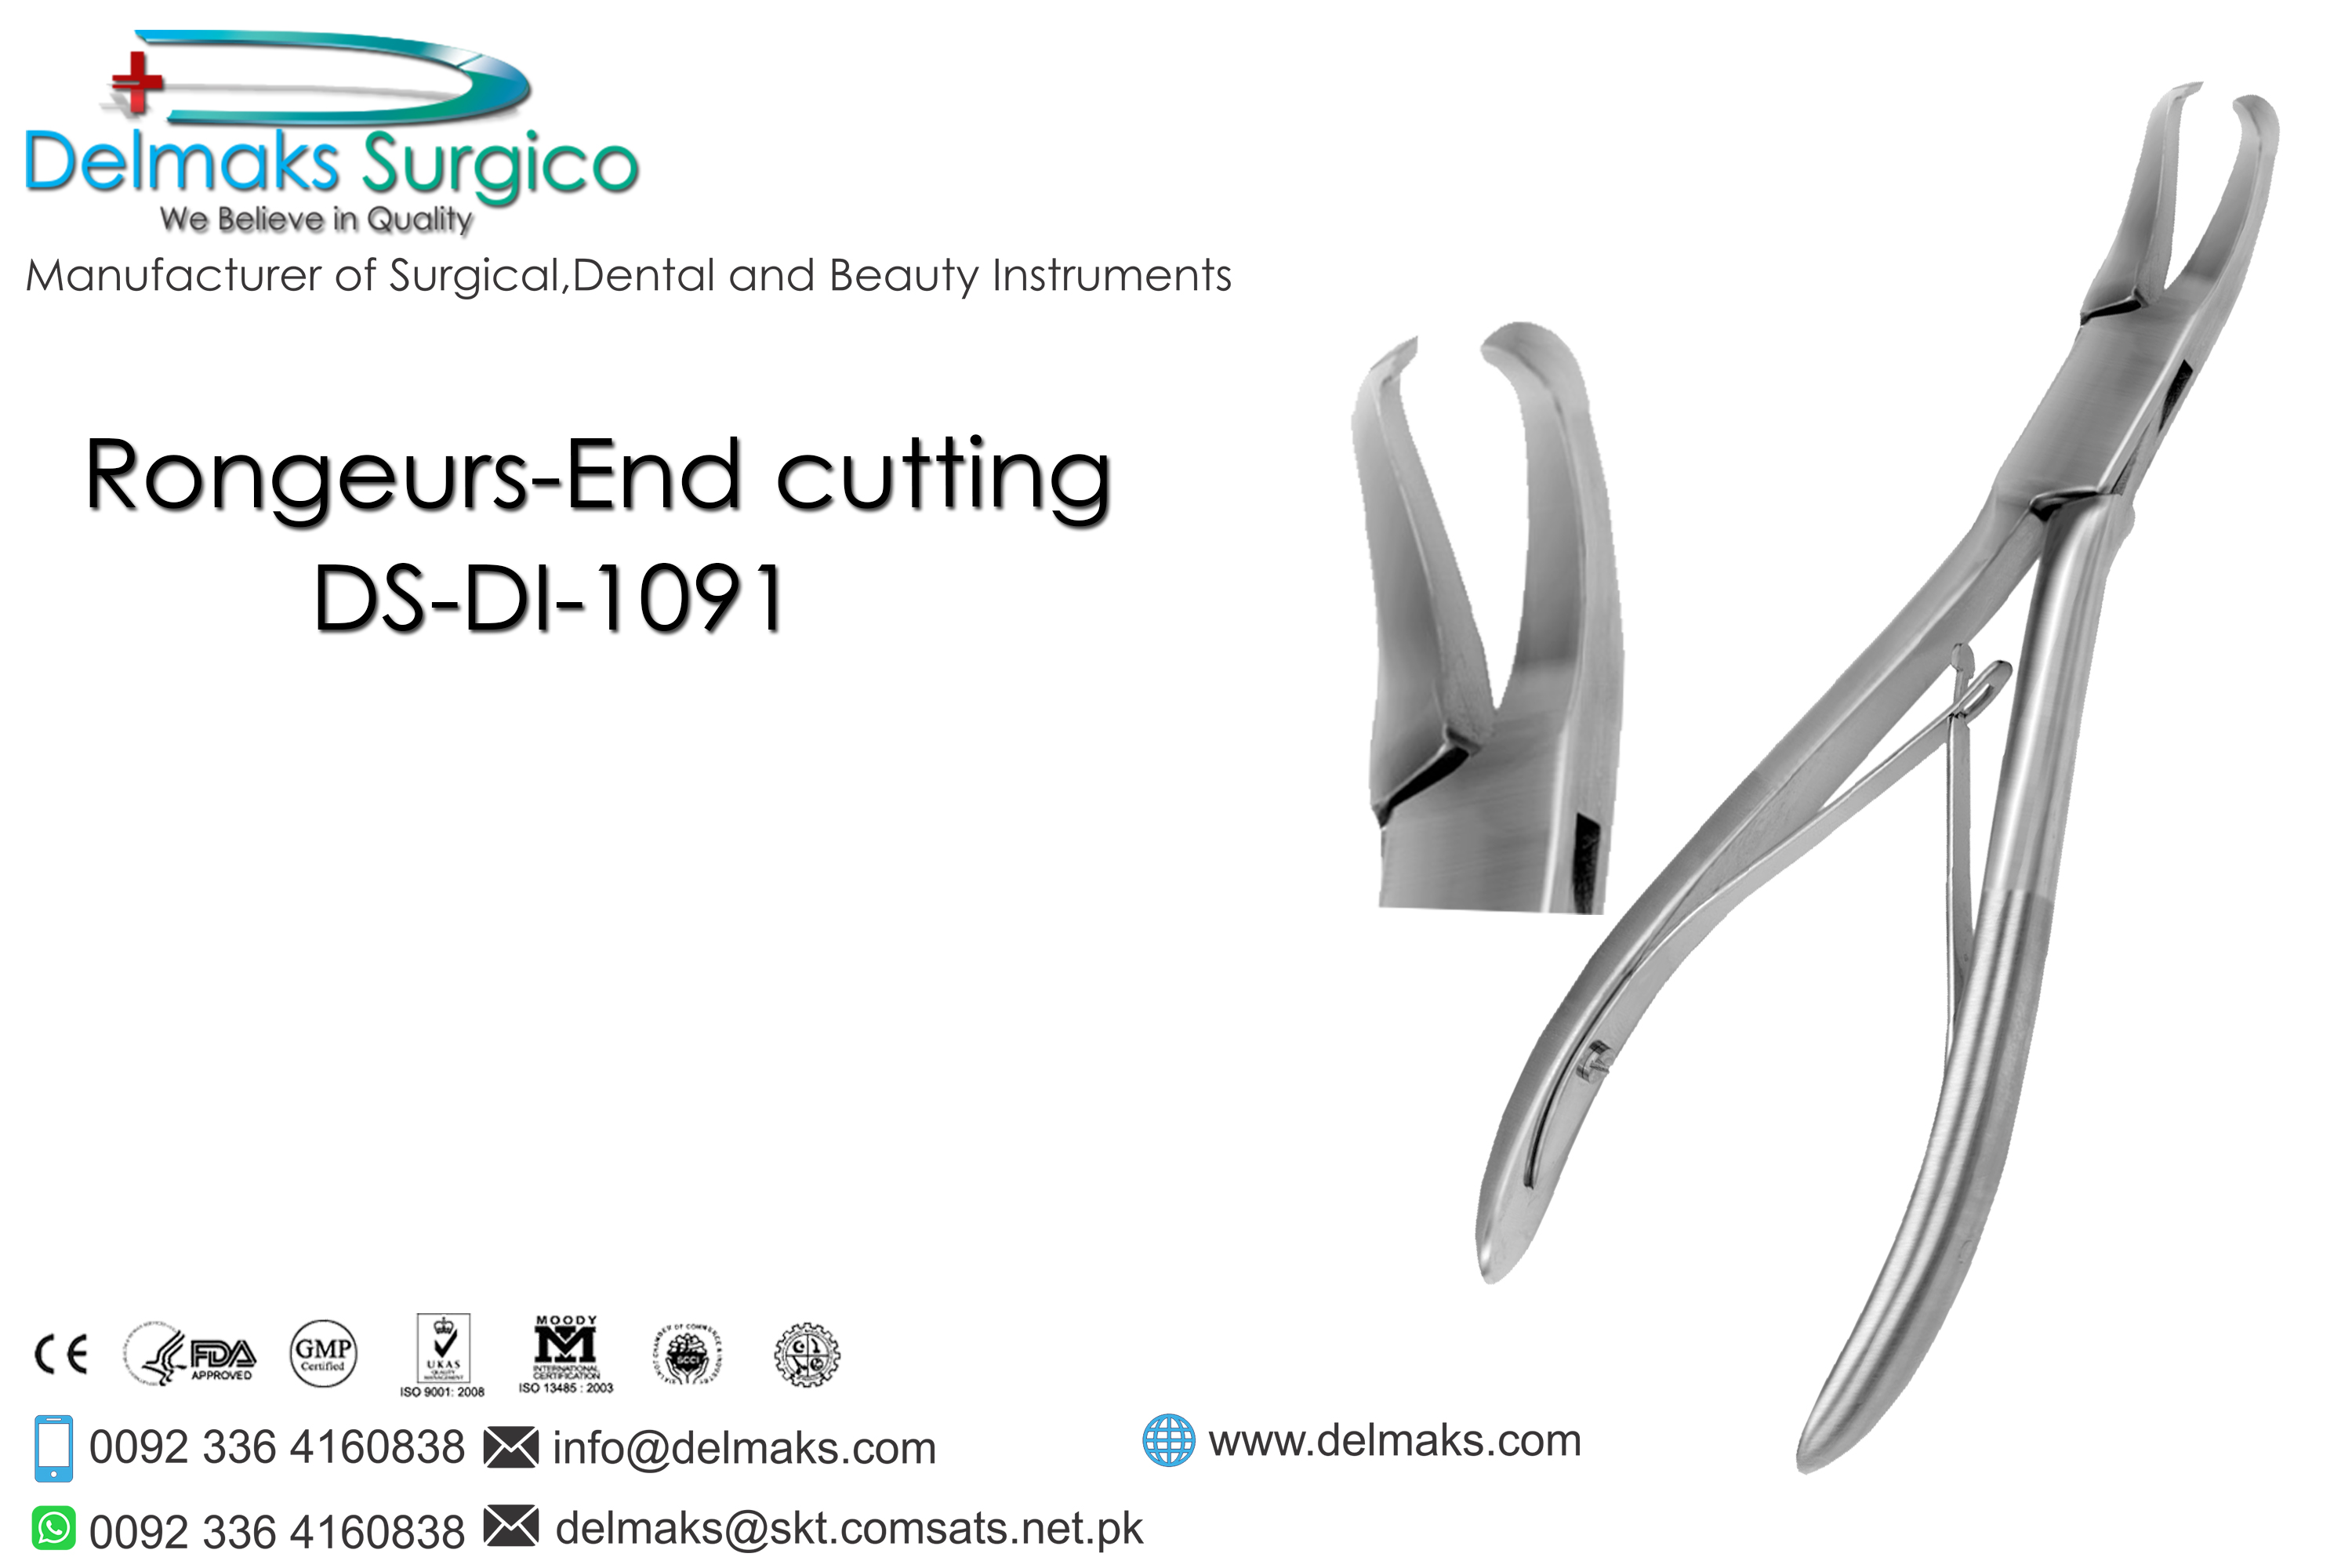 Rongeurs End Cutting-Oral And Maxillofacial Surgery Instruments-Dental Instruments-Delmaks Surgico